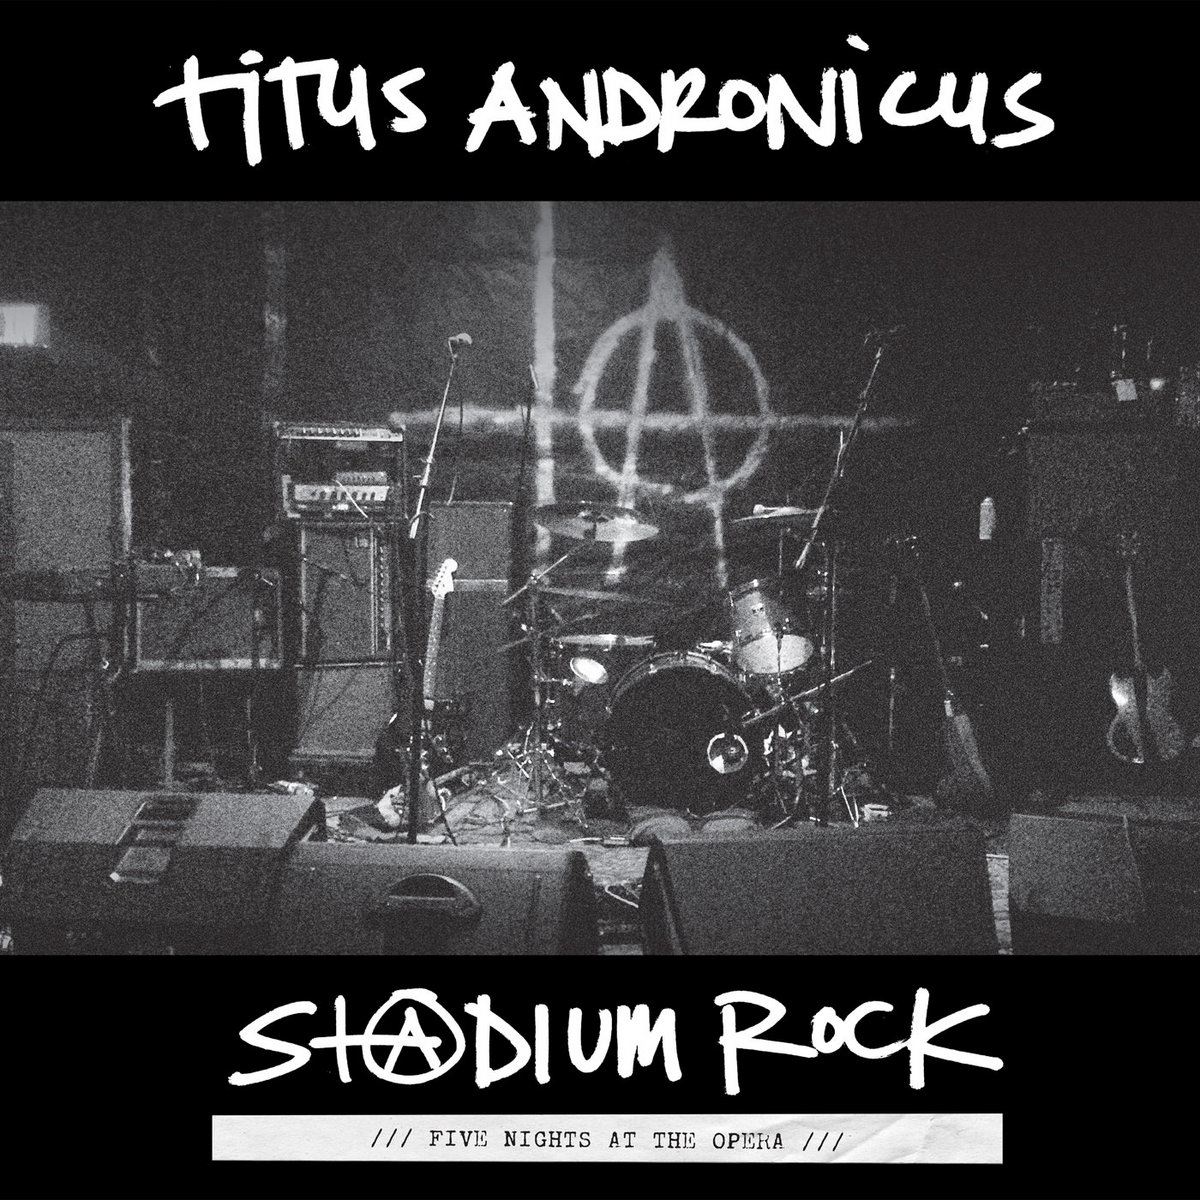 S+@dium Rock : Five Nights at the Opera | Titus Andronicus